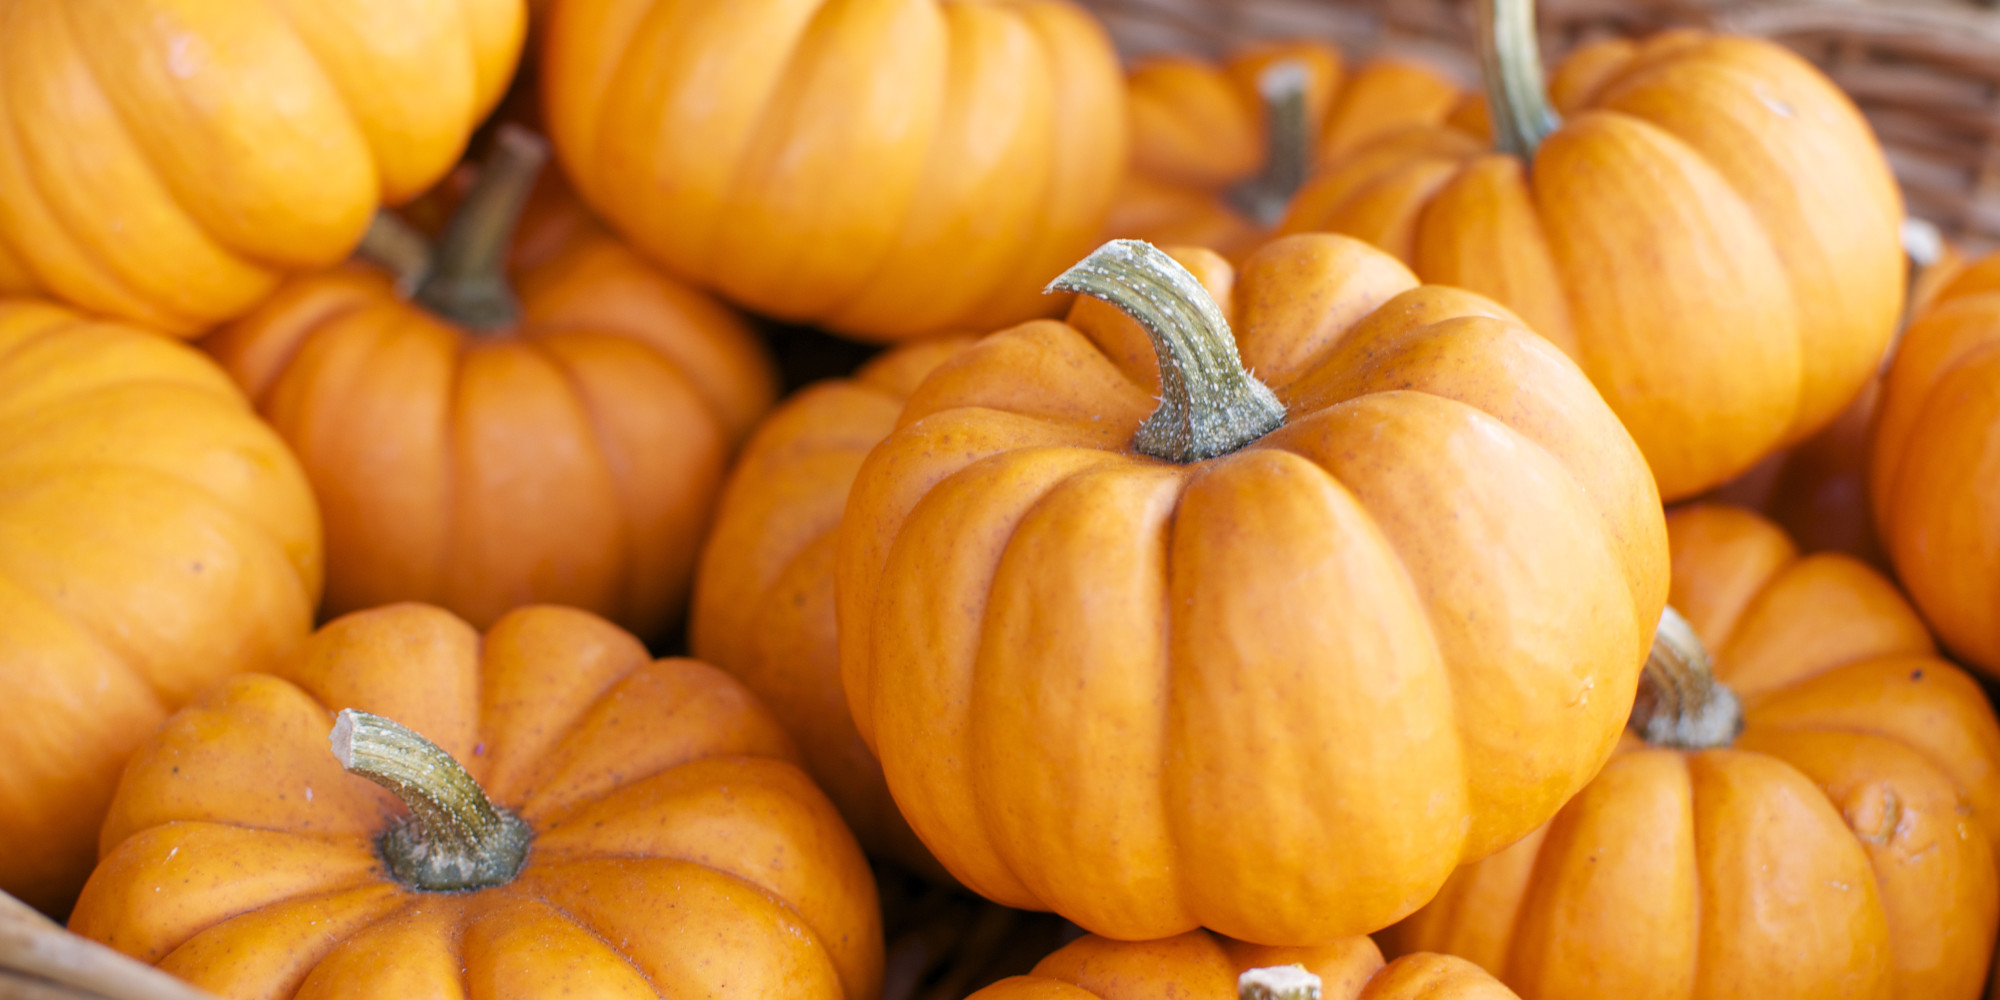 Fall Desktop Wallpaper With Pumpkins 5 Surprising Uses For Pumpkin None Of Which Are Lattes